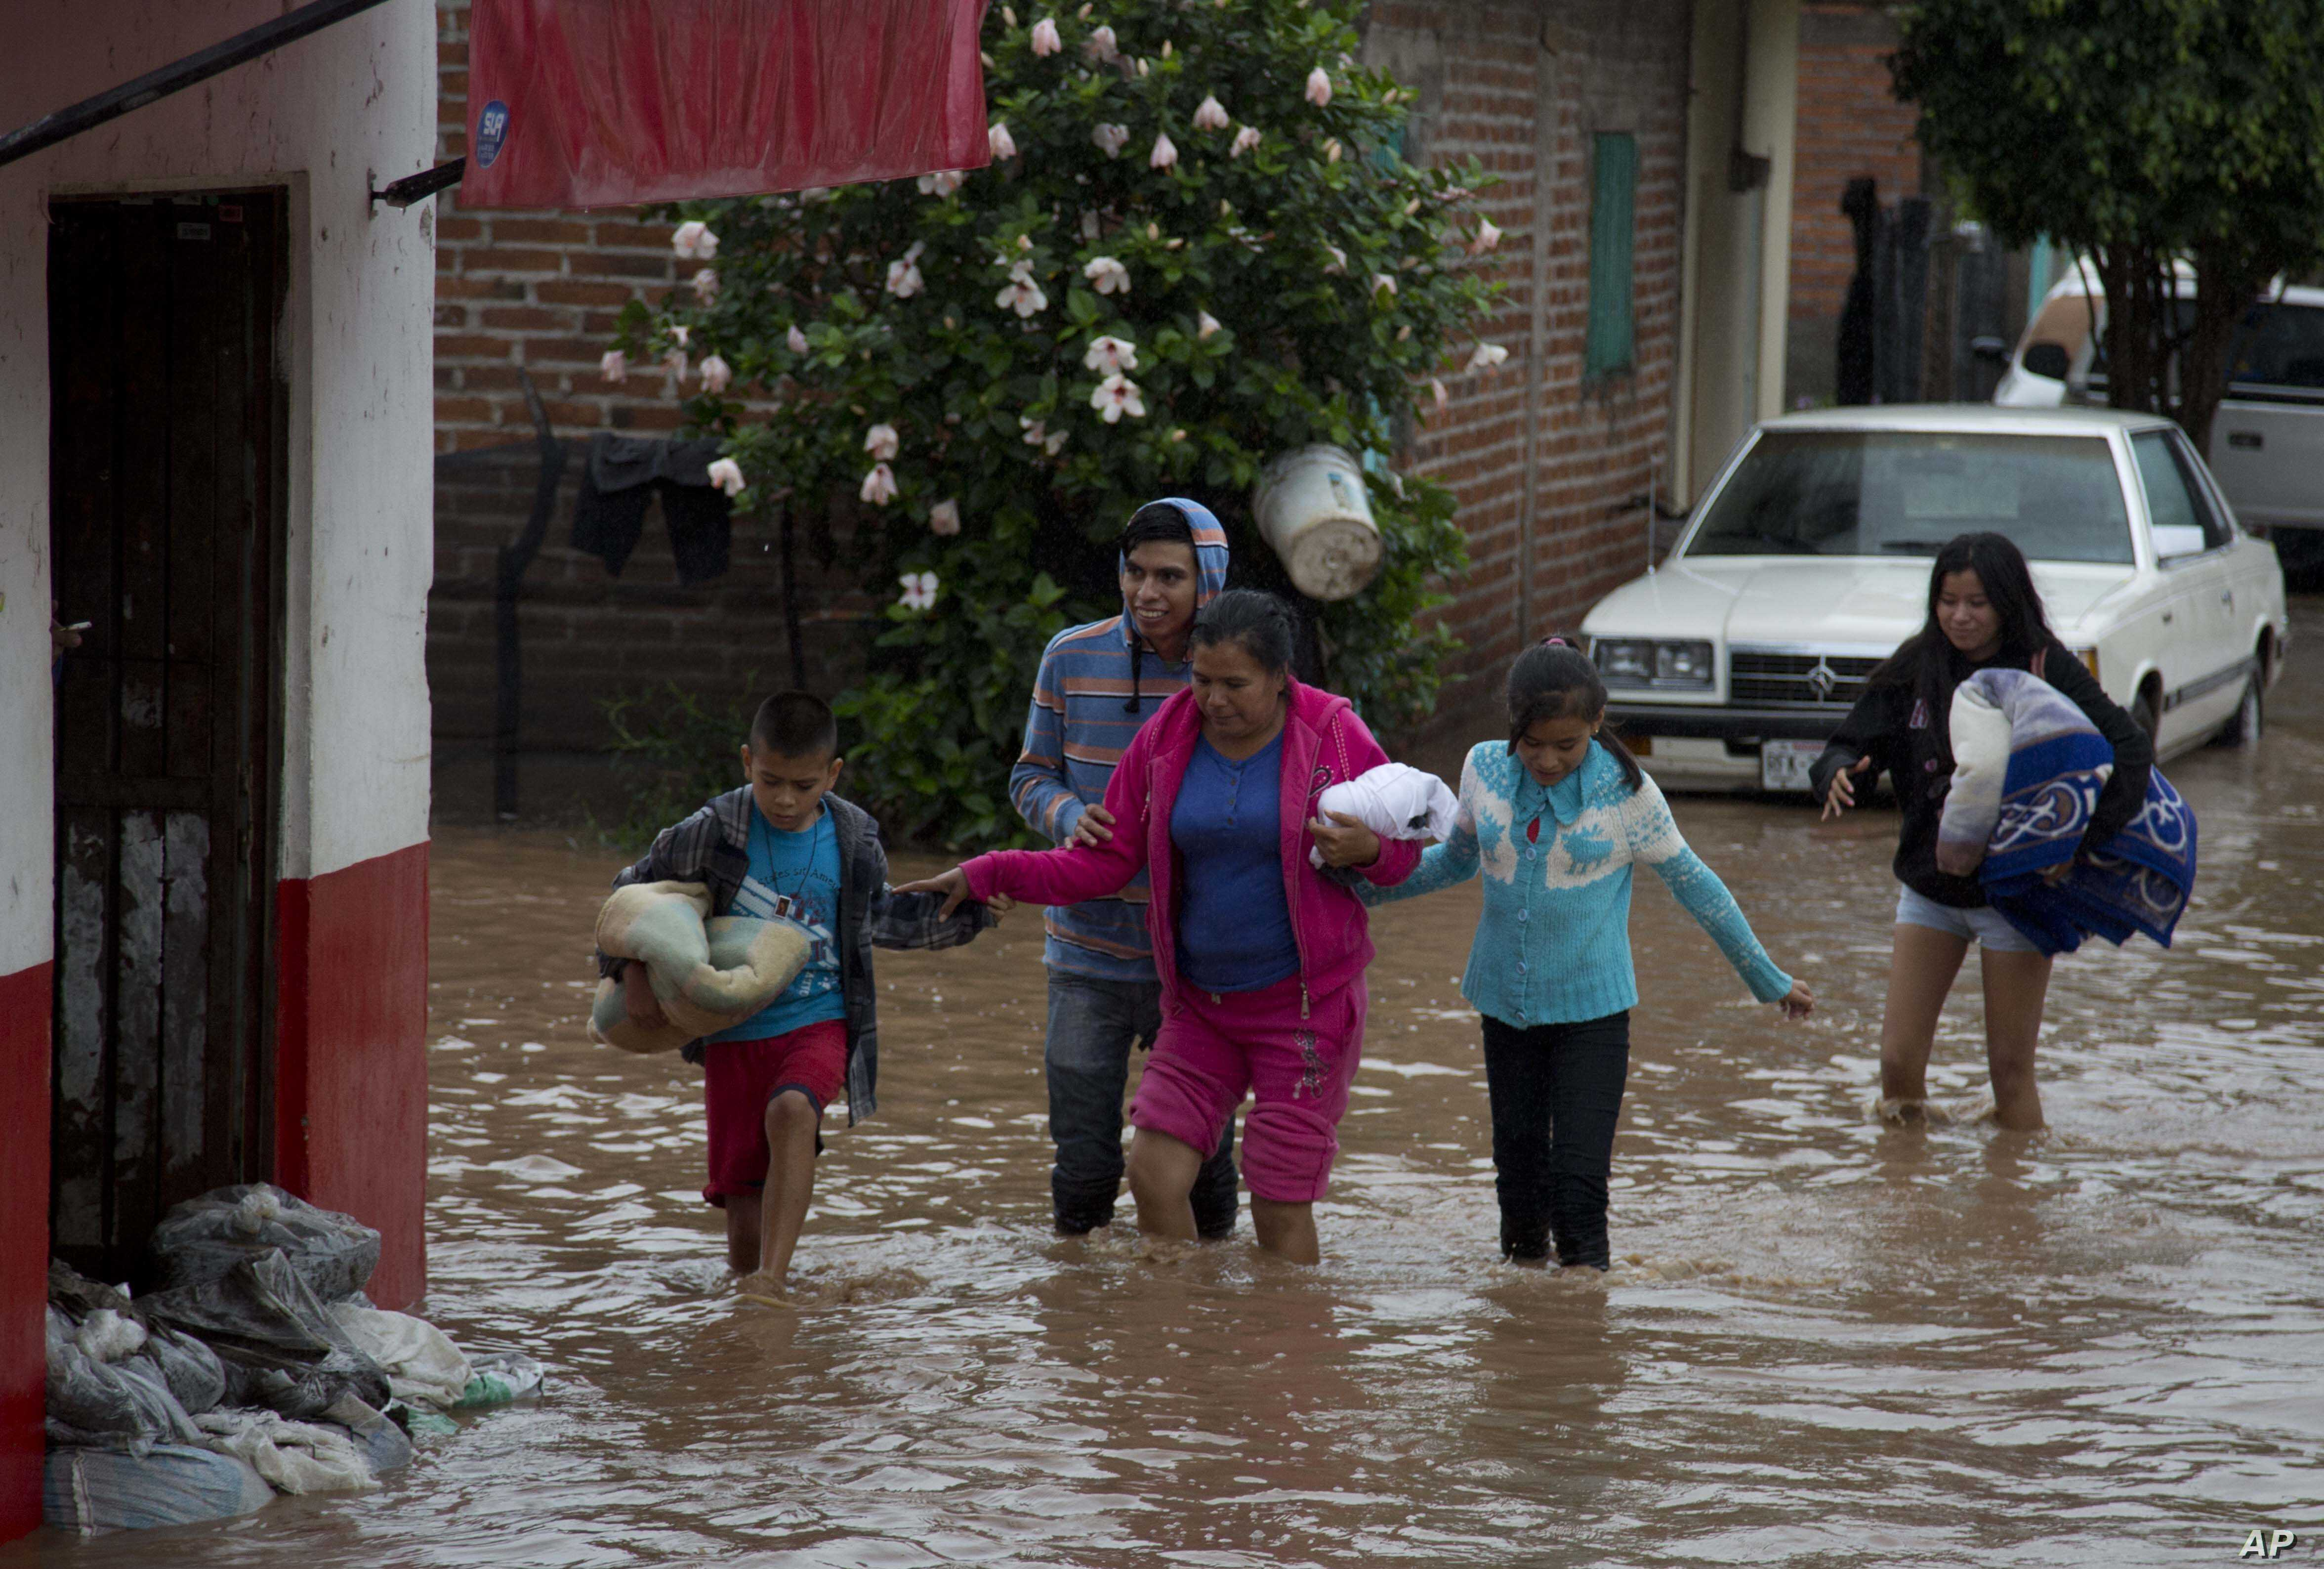 Residents walk along a flooded street in Zoatlan, Nayarit state, some 150 km northwest of Guadalajara,  Mexico, Oct. 24, 2015.